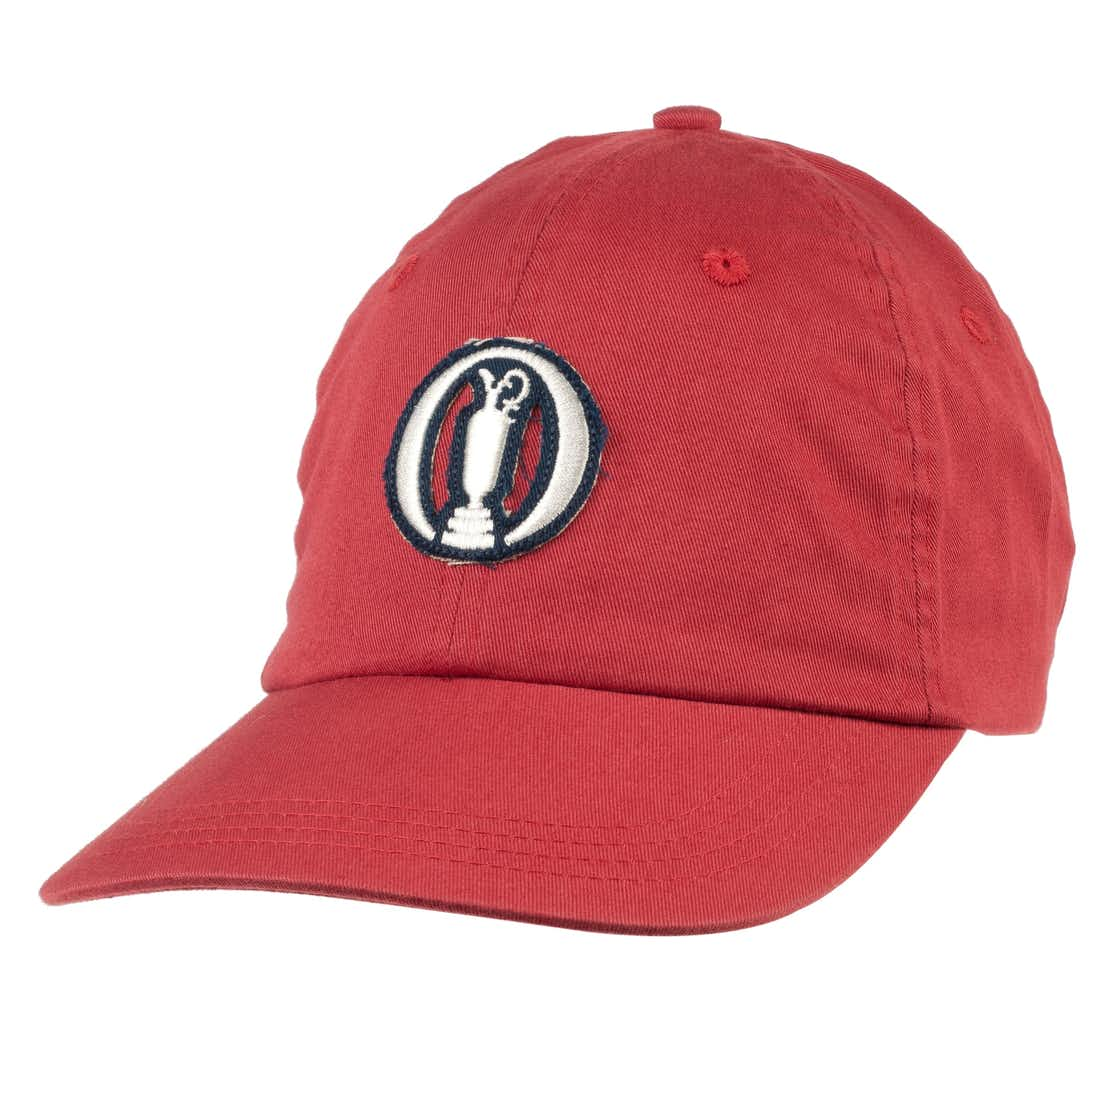 The Open Baseball Cap - Red